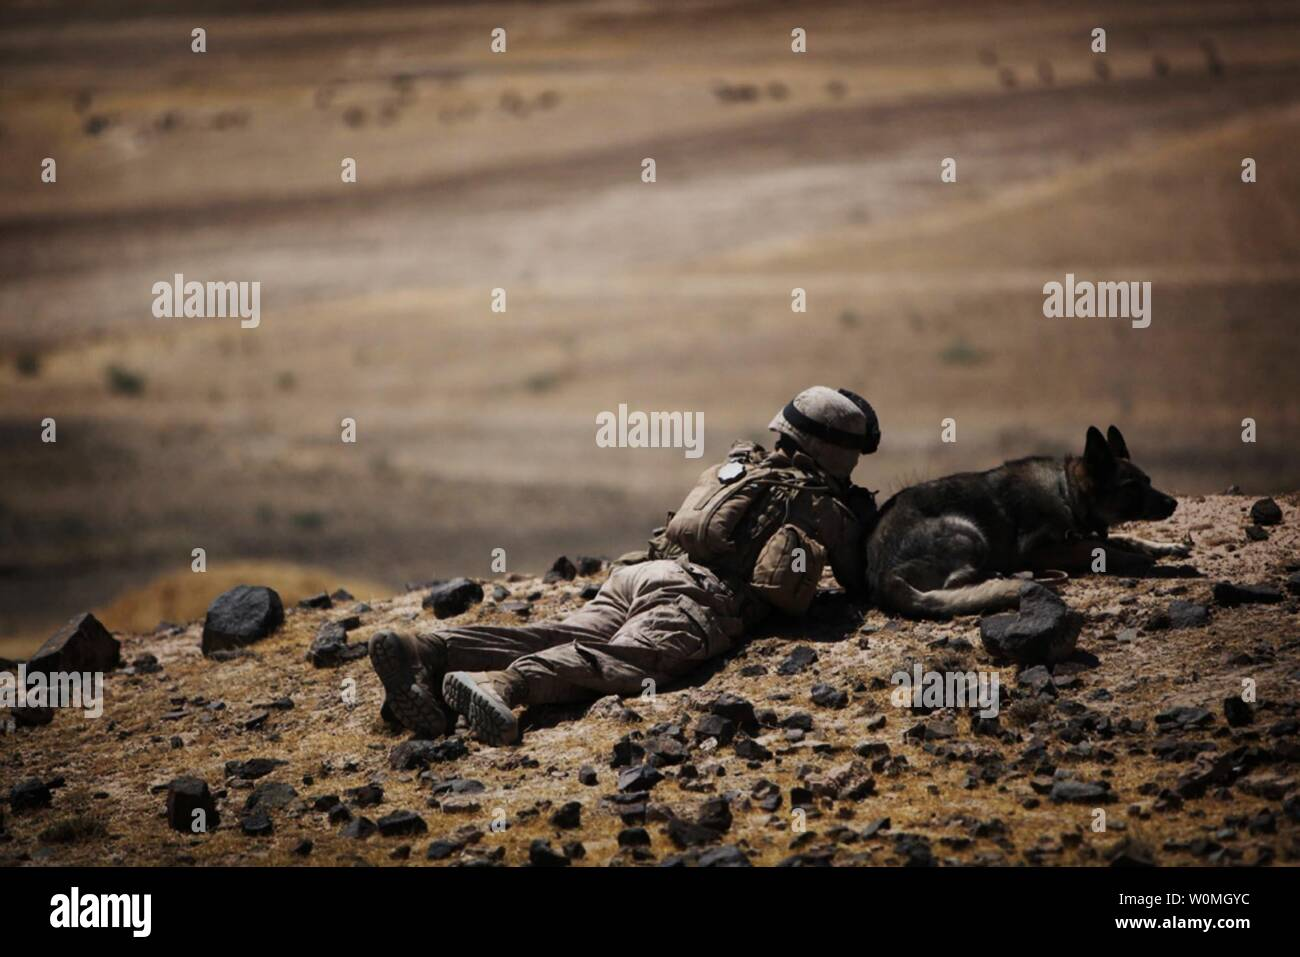 Lance Cpl. Daniel Franke, a dog handler attached to Alpha Company, 1st Battalion, 2nd Marine Regiment, Regimental Combat Team 2, lays in the prone on an overlooking hill with his dog in Towrah Ghundey, Afghanistan on June 11, 2010. UPI/Daniel Blatter/U.S. Marines Stock Photo